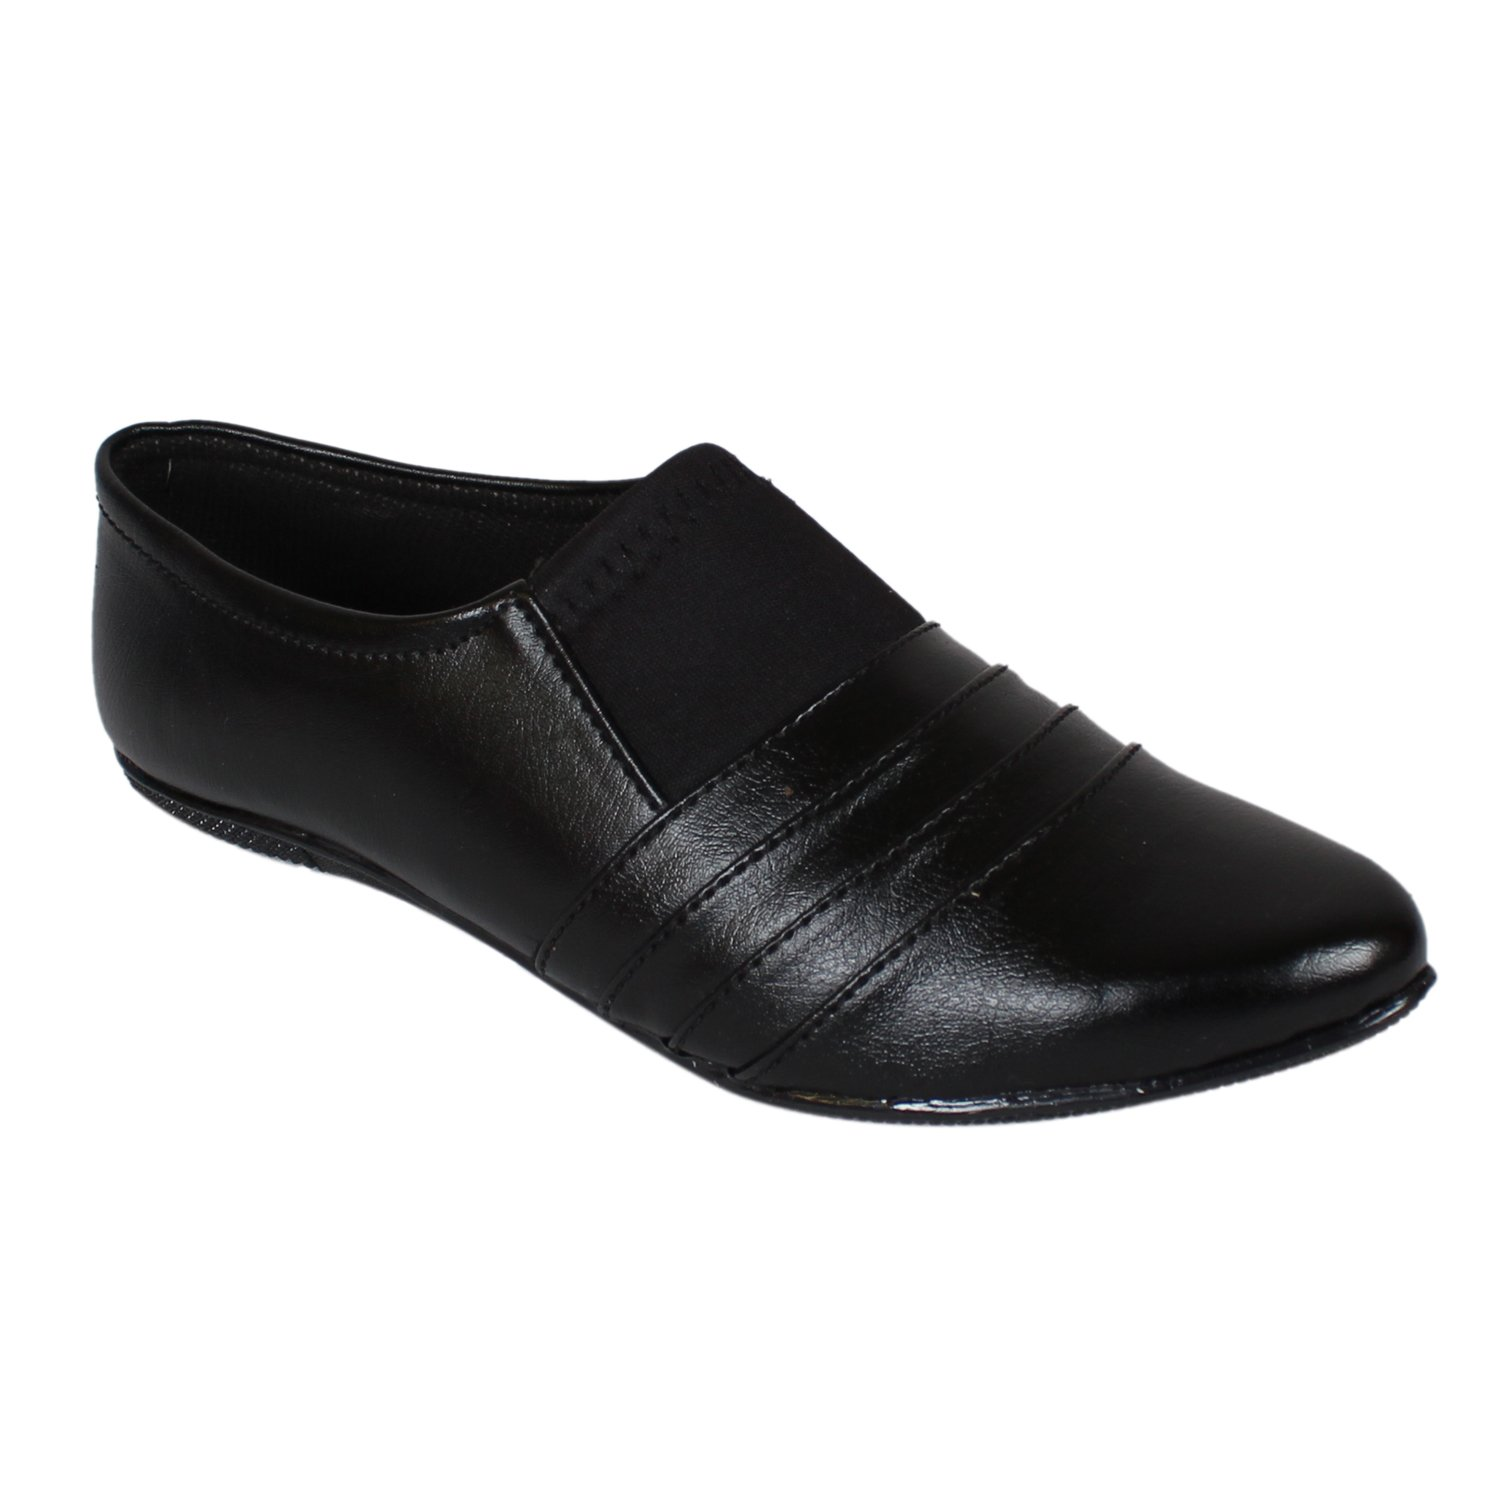 Buy City Walk Women's formal shoes at